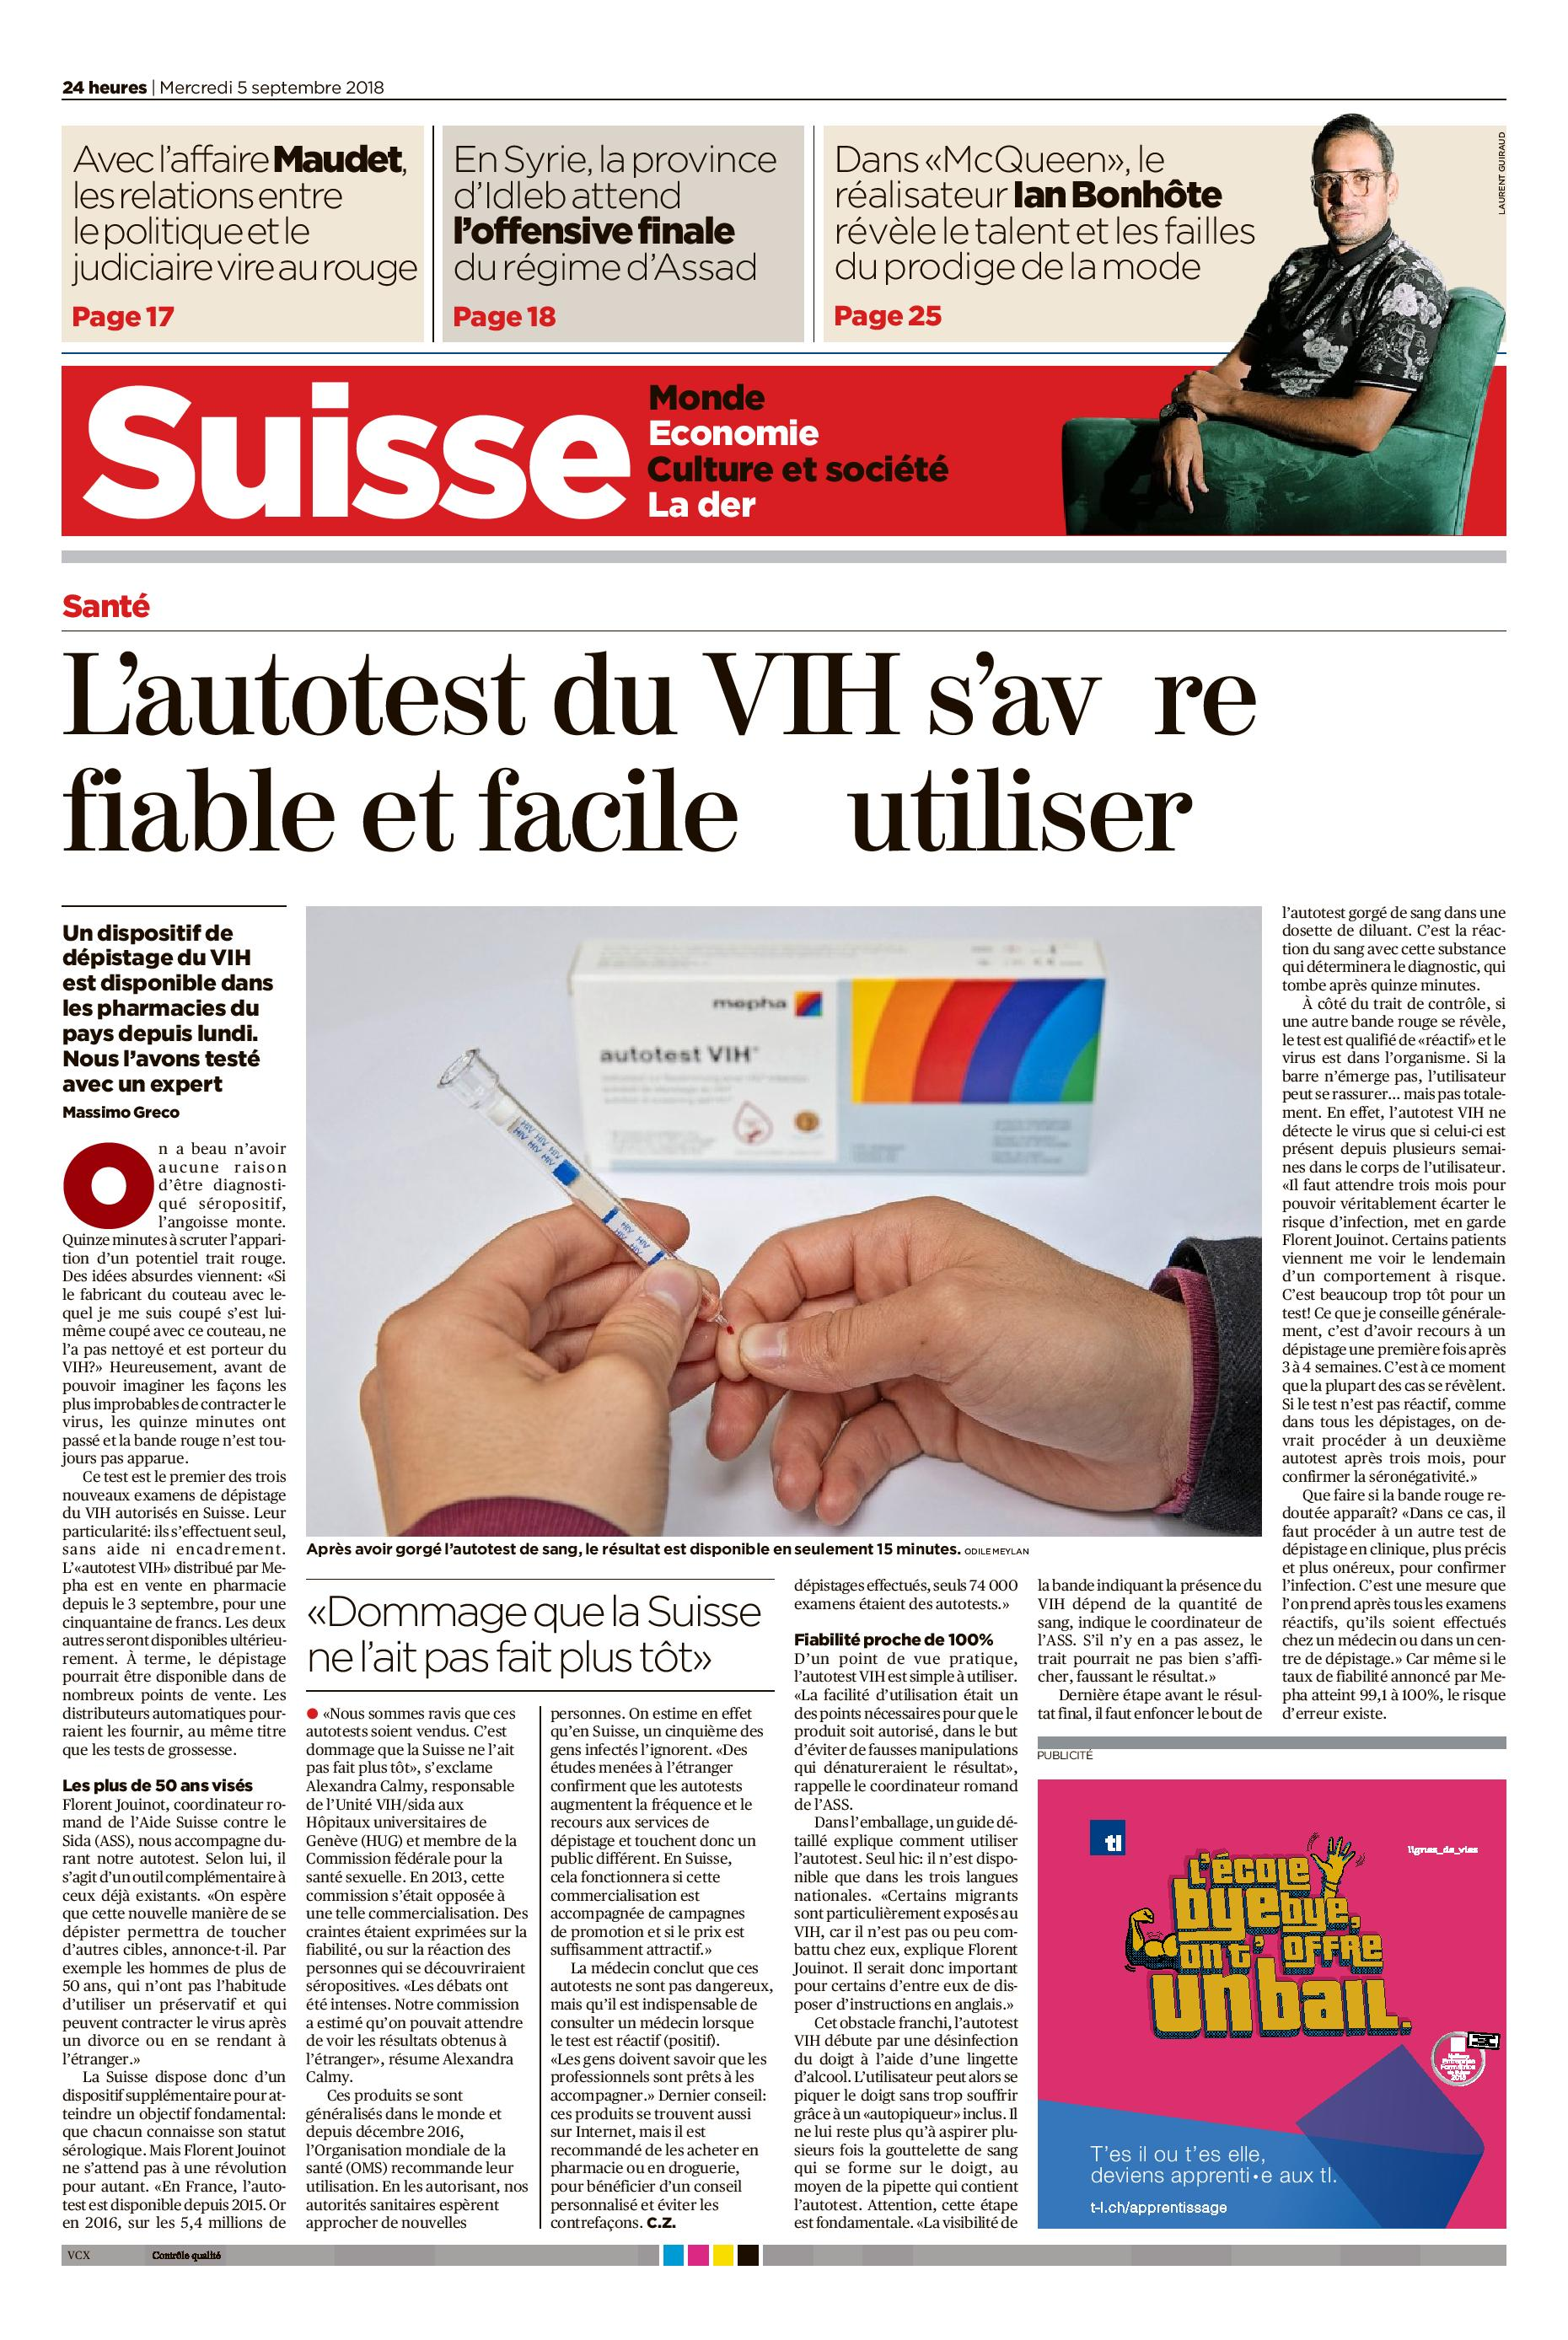 VIH, HIV, SIDA, autotest, prévention